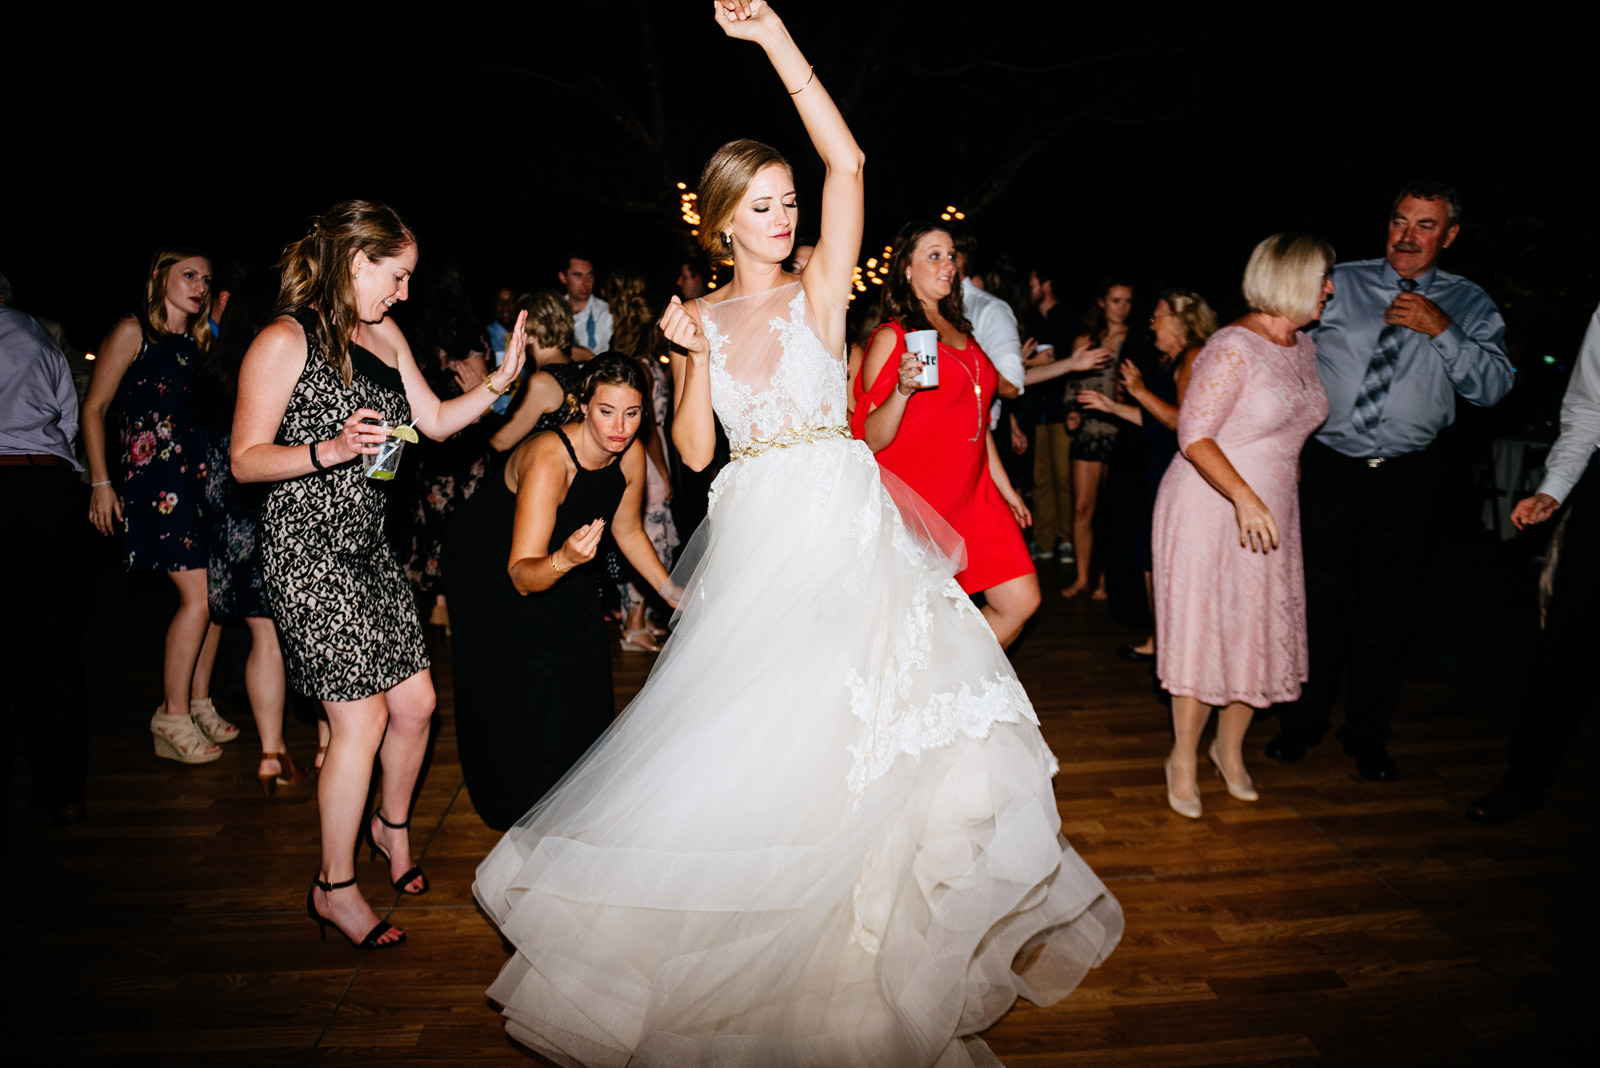 bride dancing during wedding reception